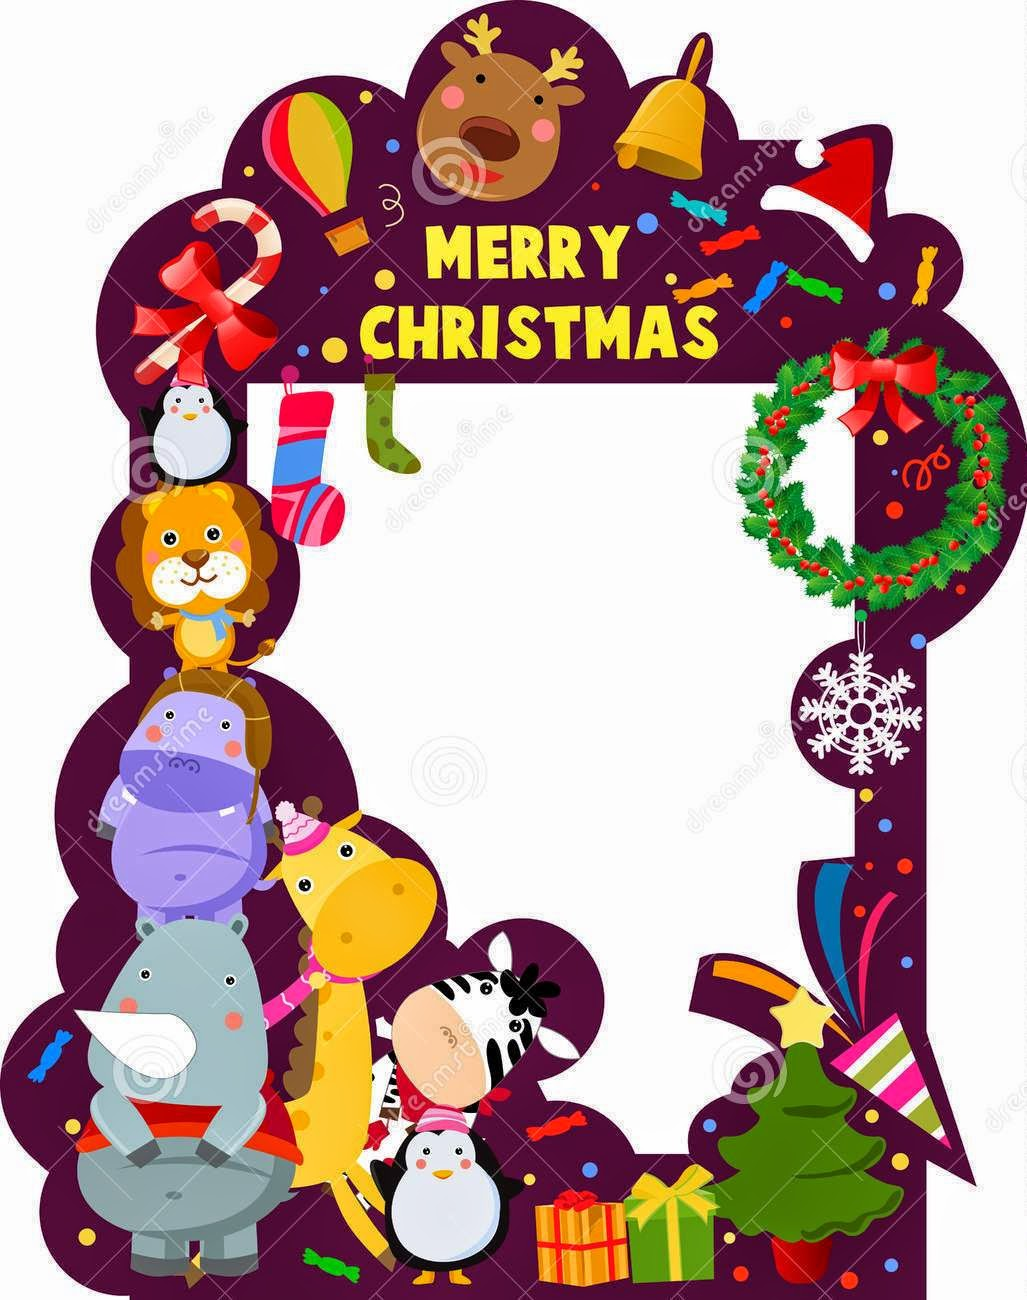 Merry Christmas 2015 Photo Frame 3D